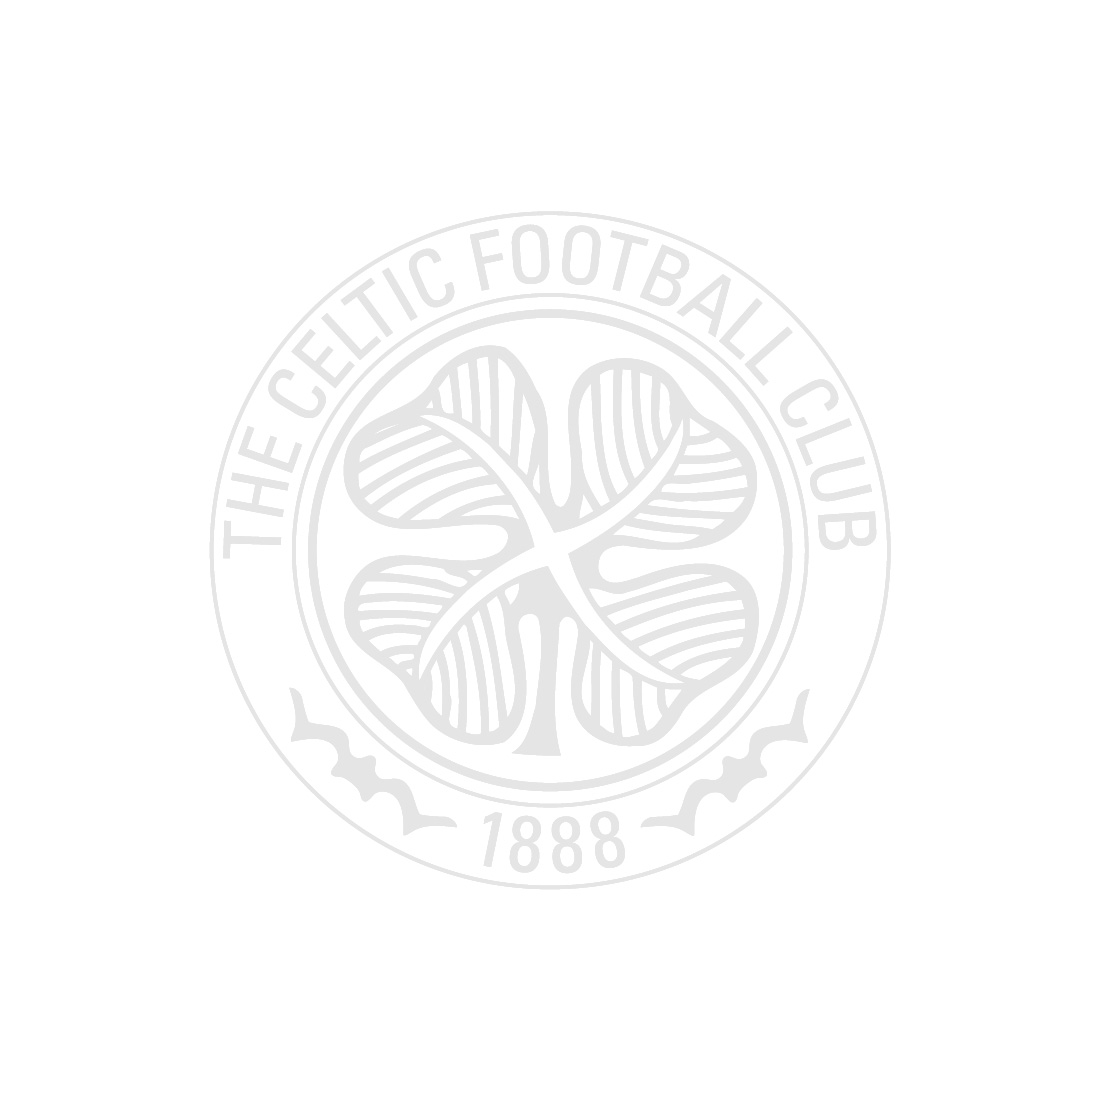 Official Celtic 2021 Calendar